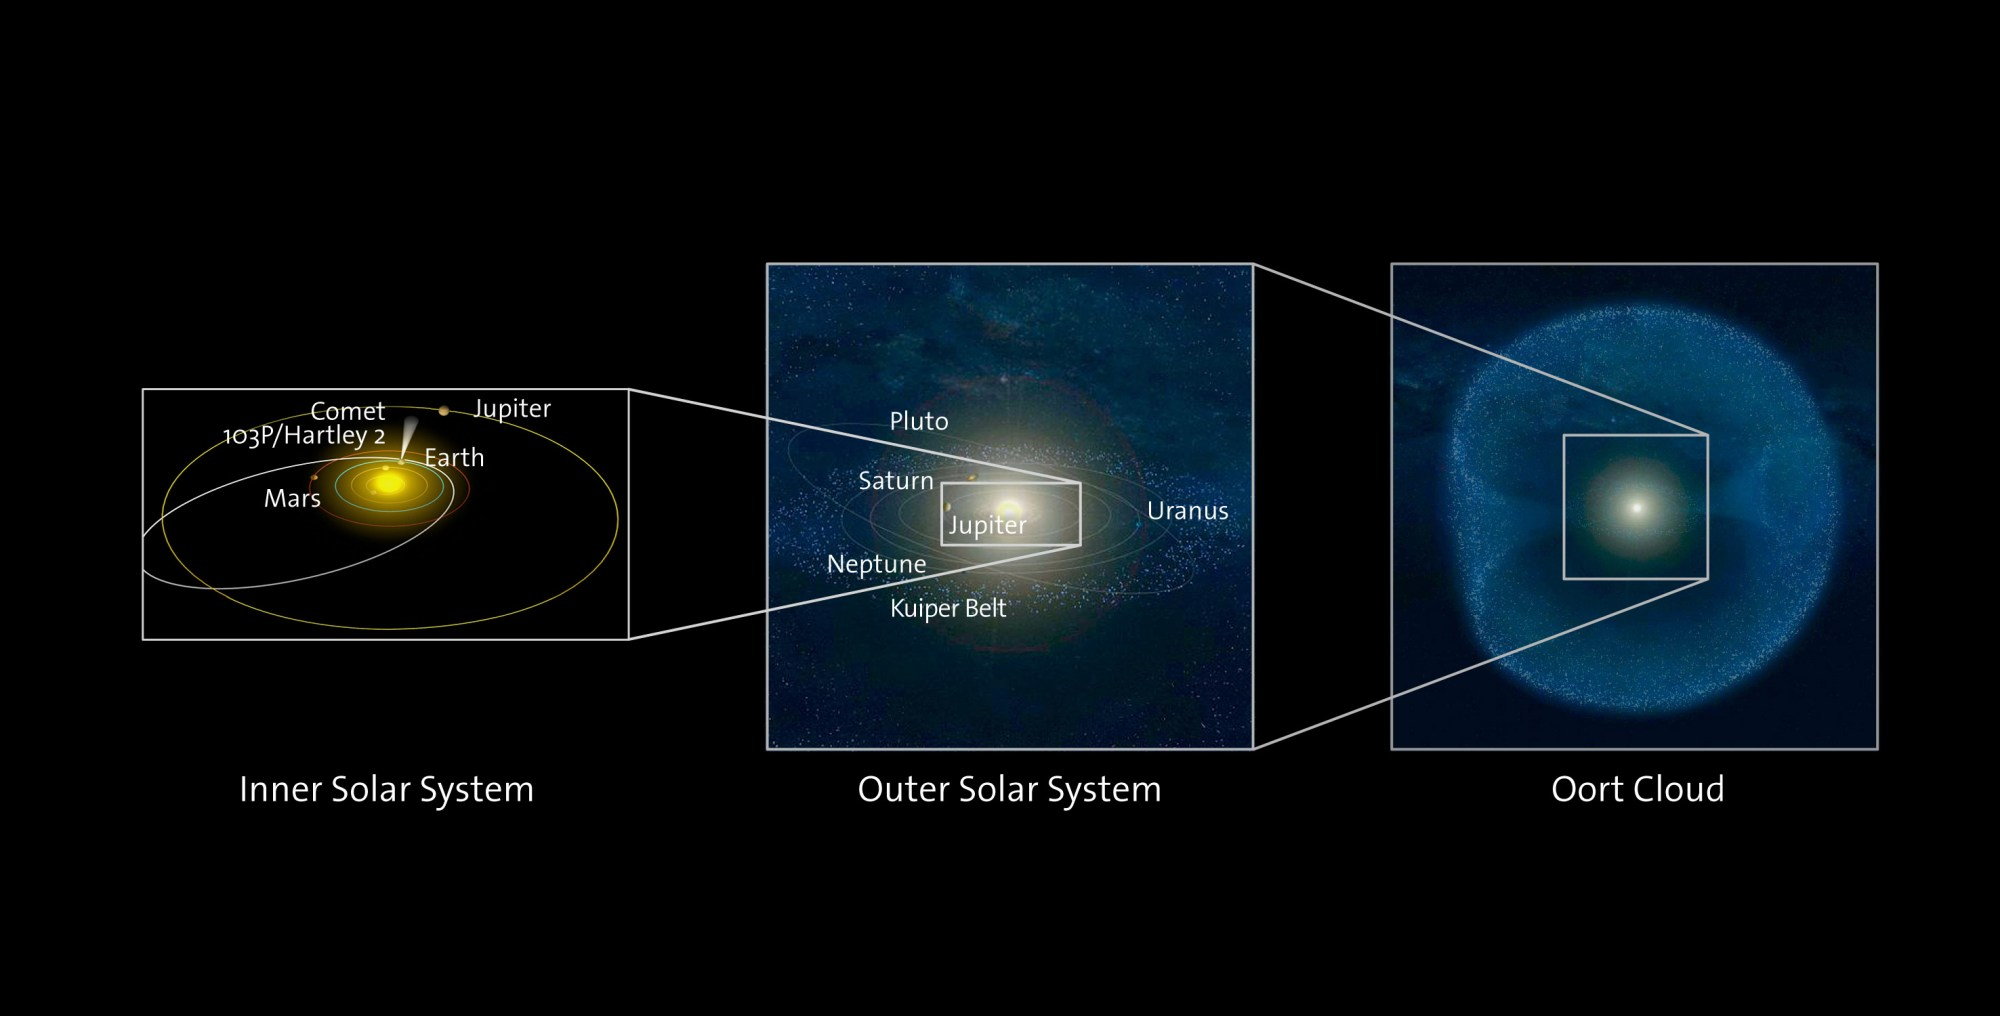 hight resolution of the left panel shows comet hartley 2 s orbit the central panel shows a larger portion of the solar system including the kuiper belt